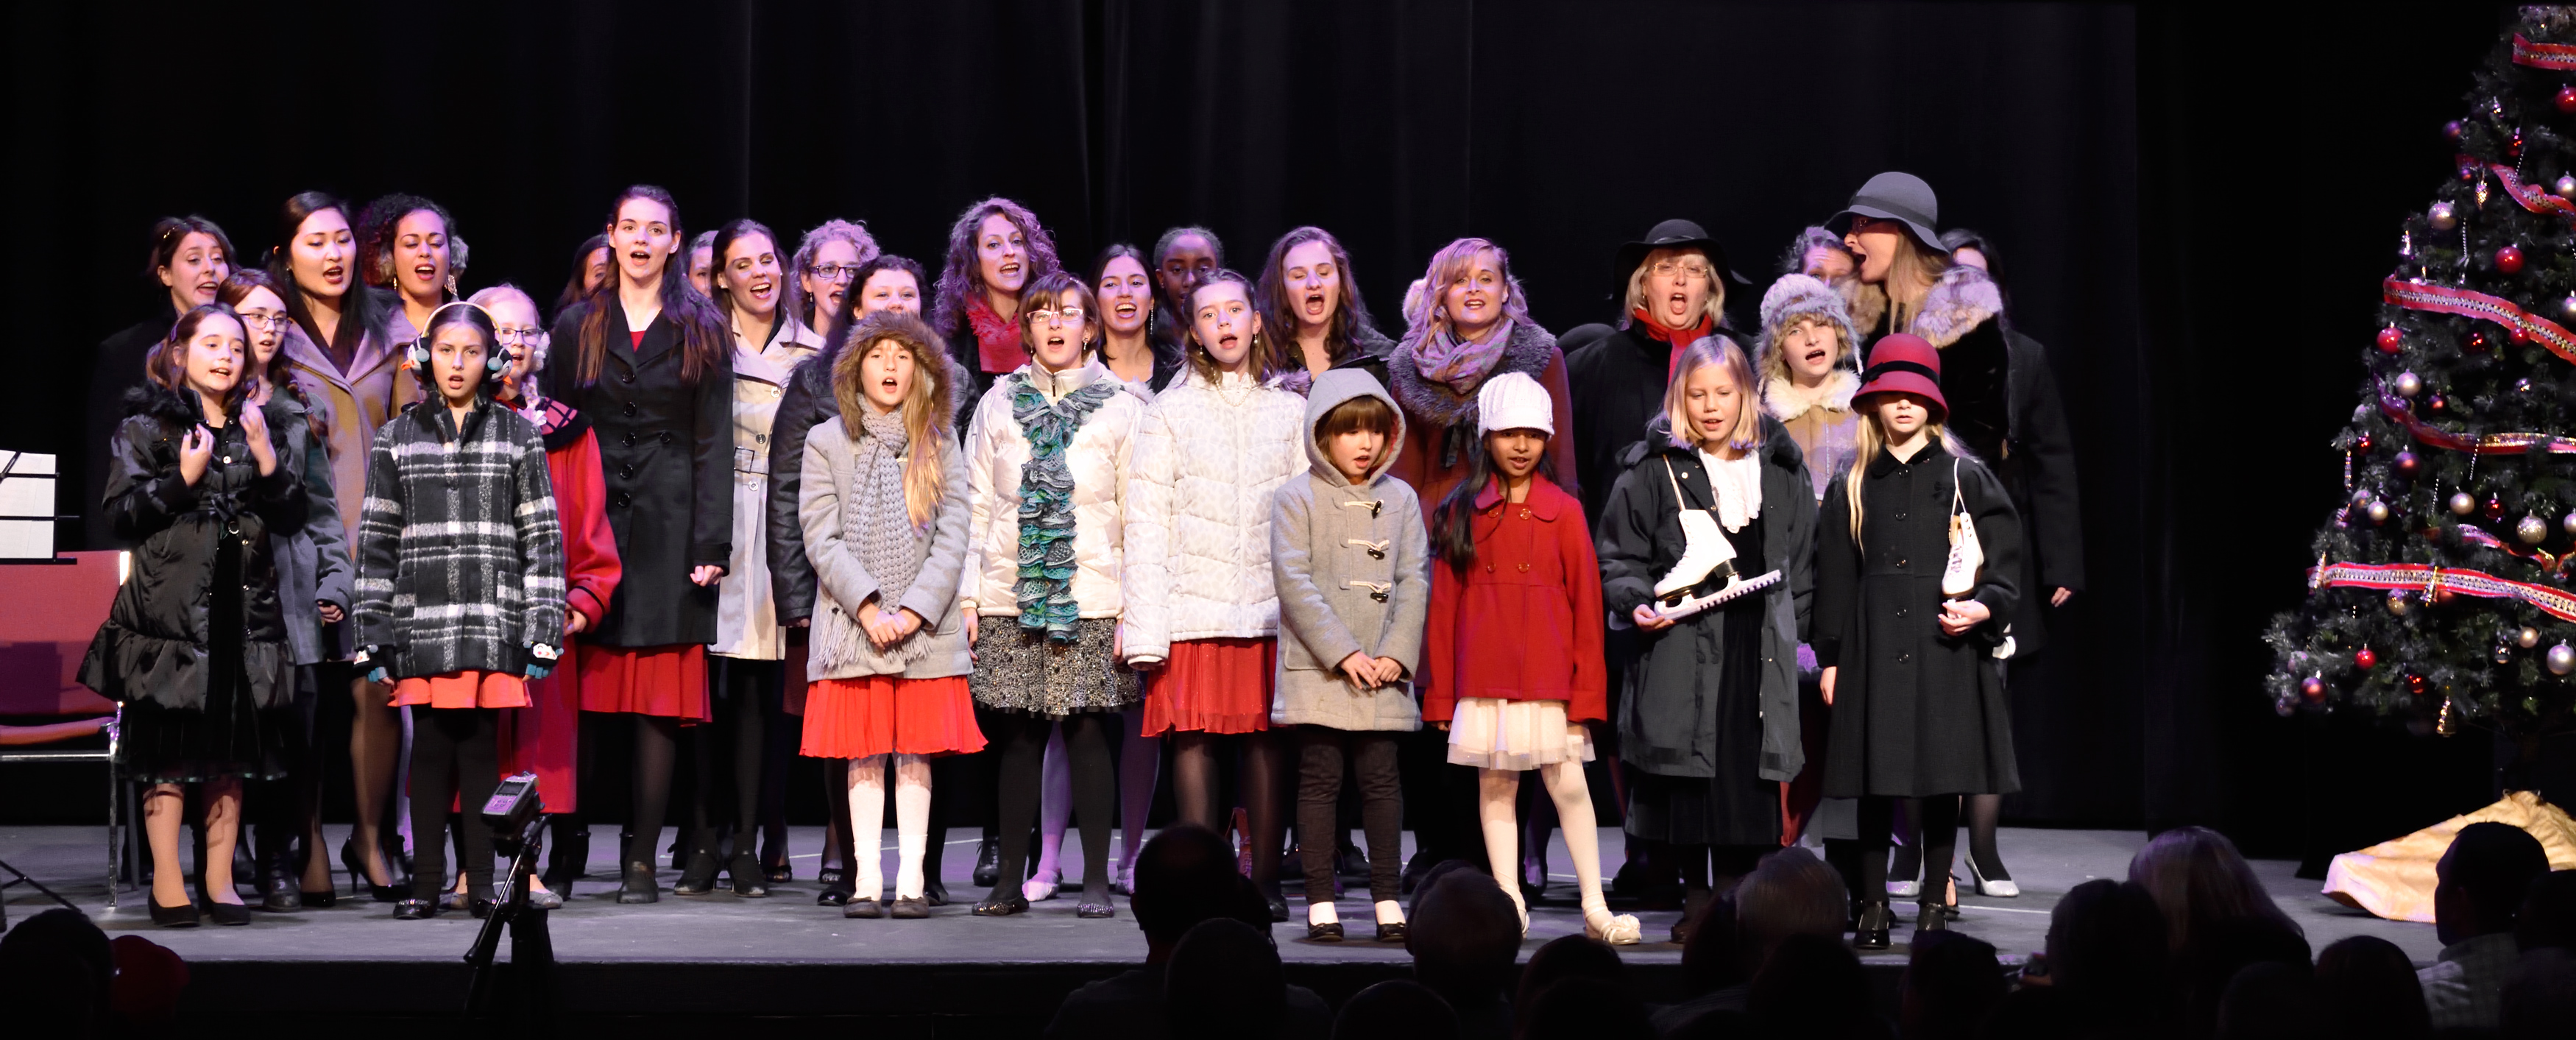 Youth singers at christmas show